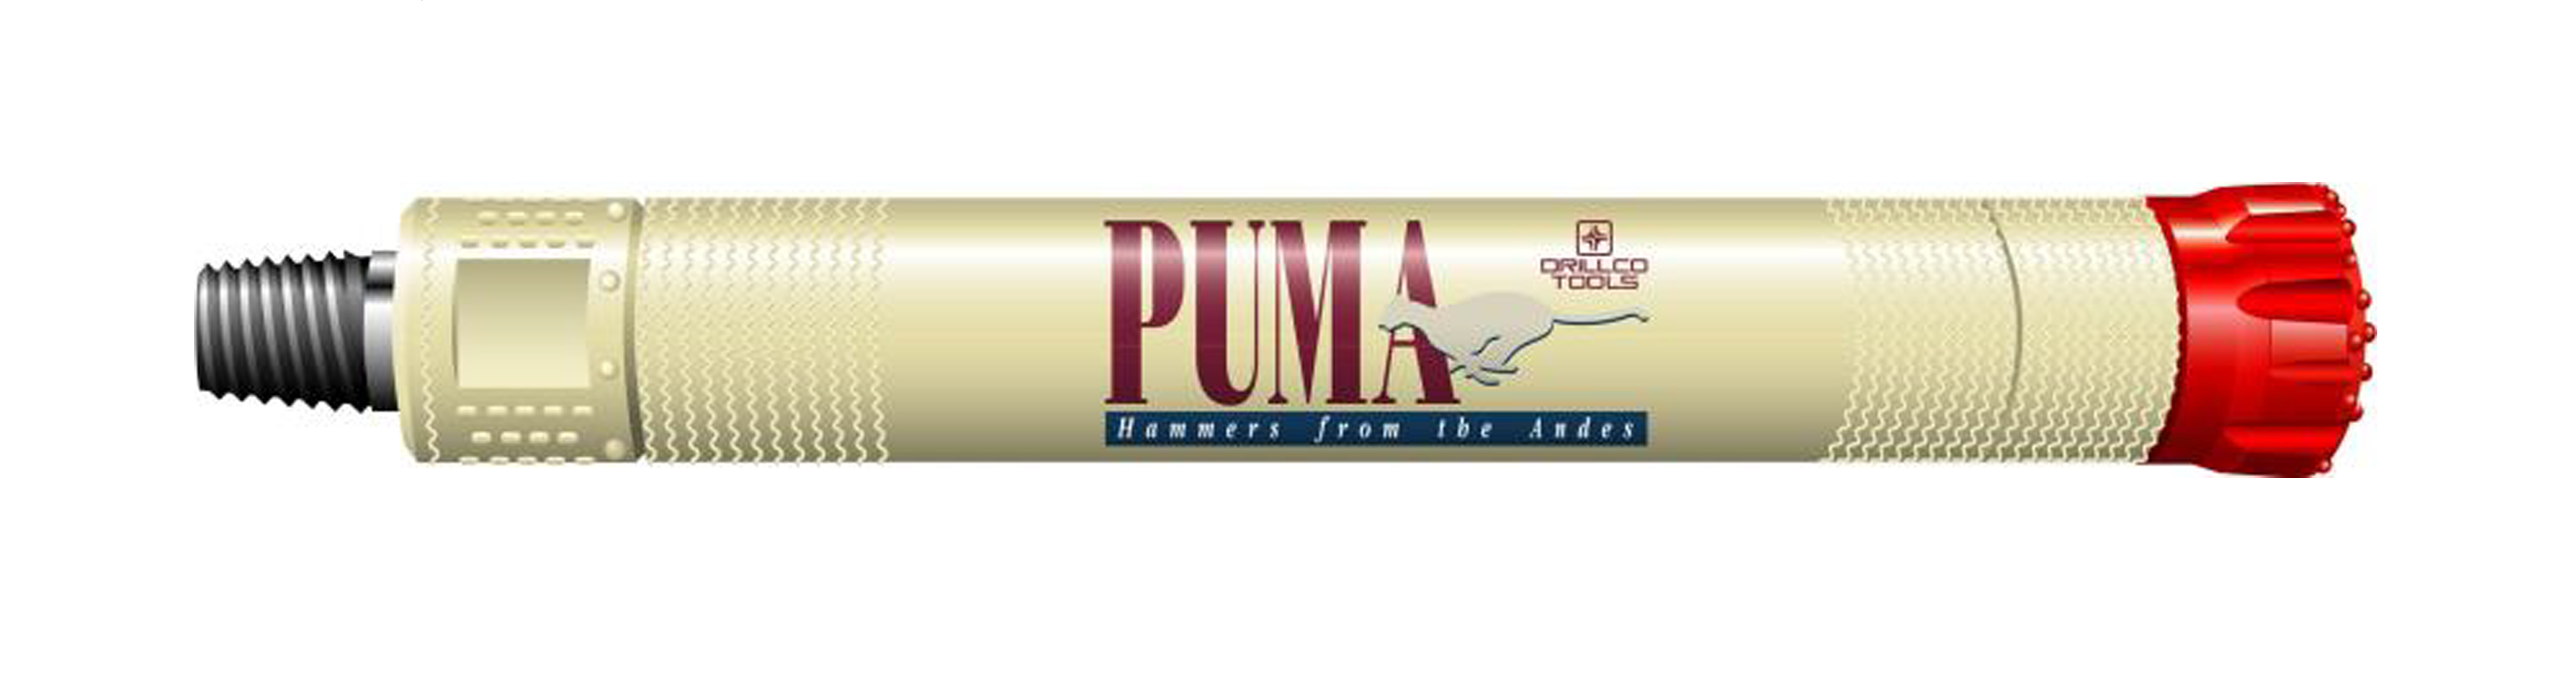 Puma Hammer Bit. See the Difference